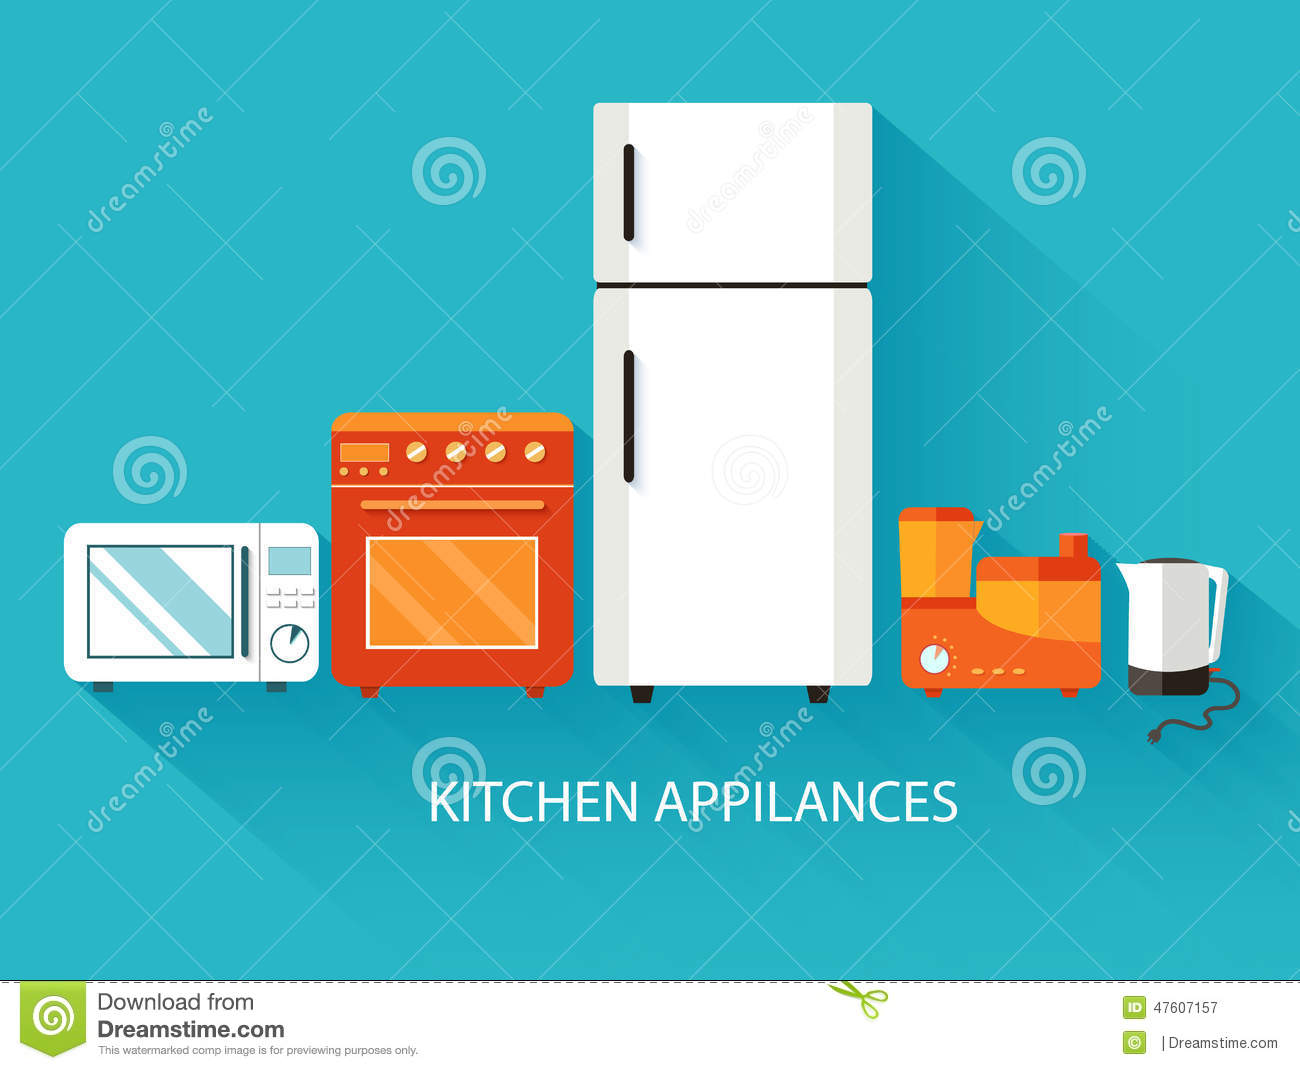 Home Appliances Kitchen Equipment Domestic Electric Tool Technology Household Laundry And